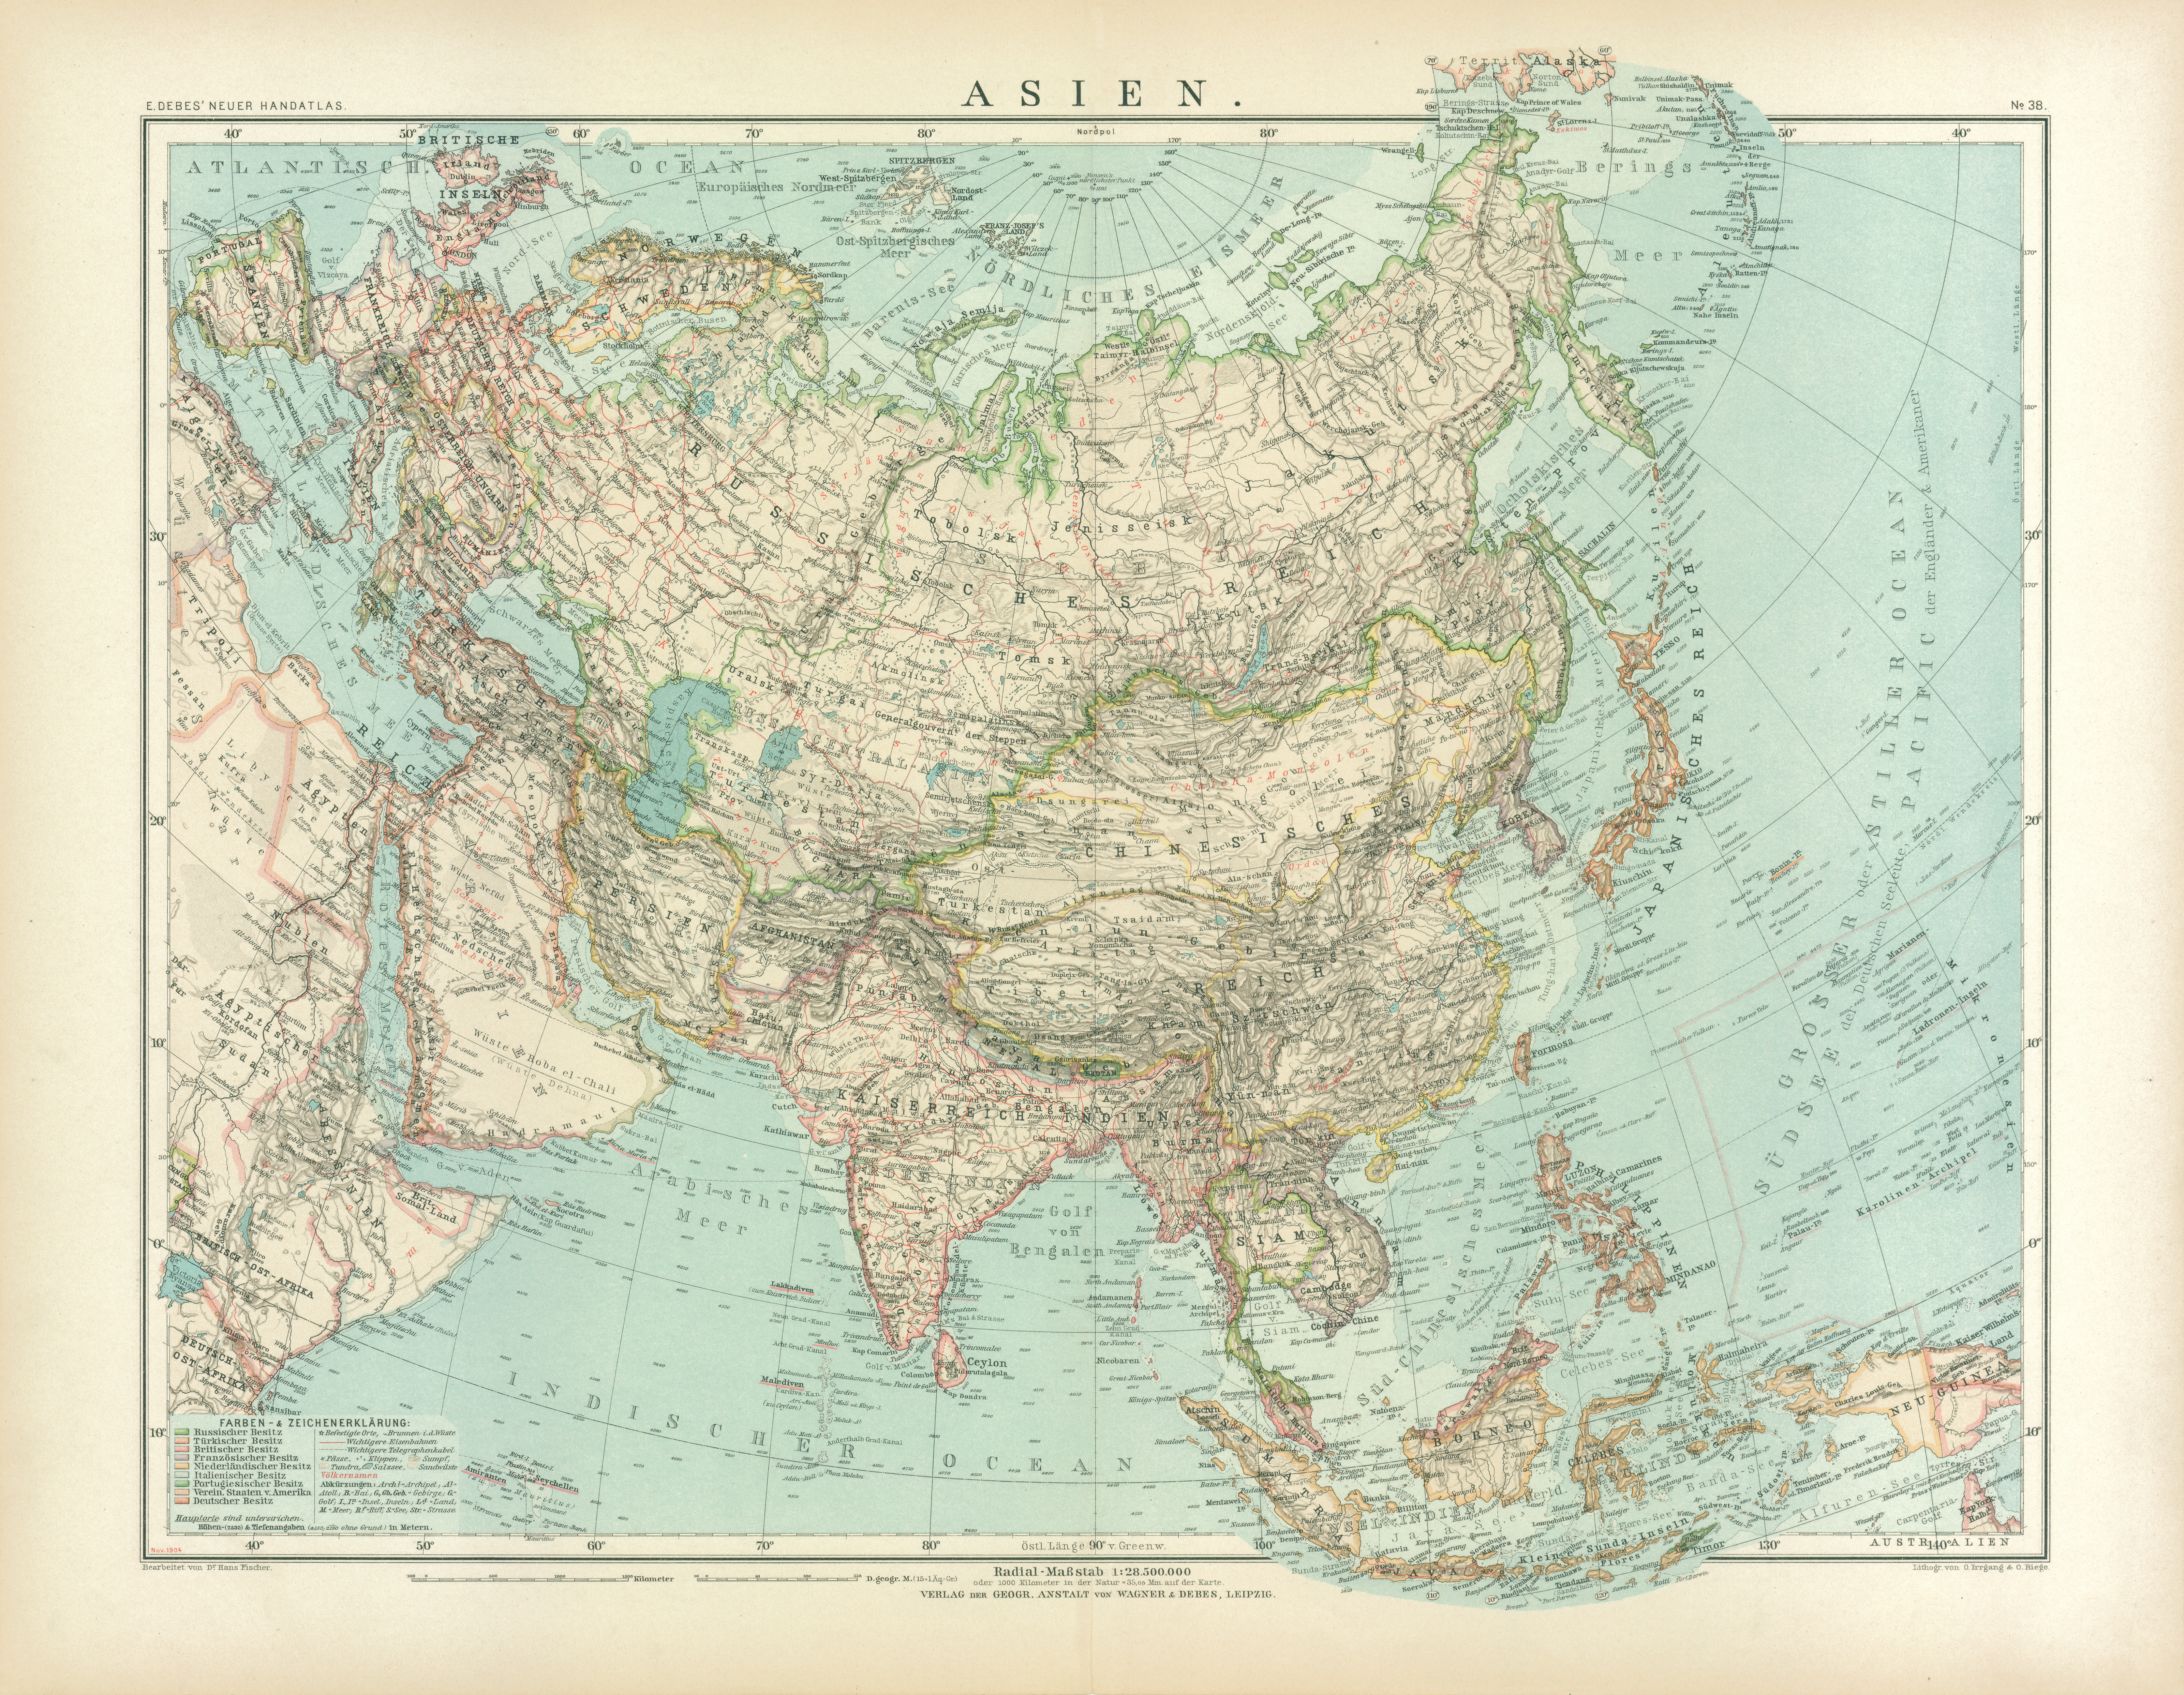 Asia General Map, 1905